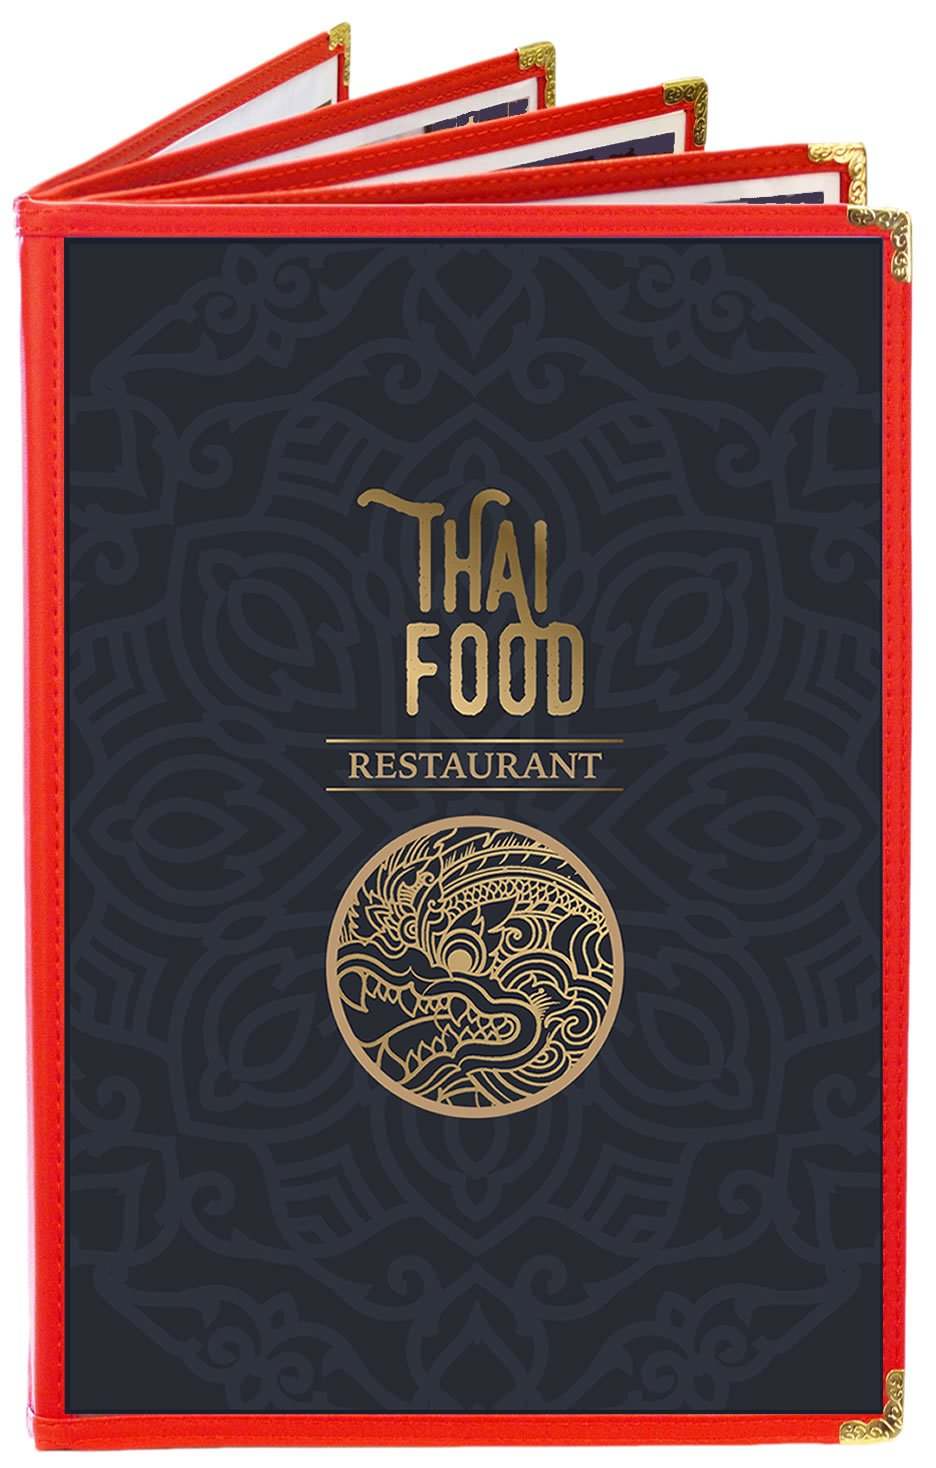 MenuCoverMan • Case of 25 Menu Covers • BETTER QUALITY #3315 RED FIVE PANEL BOOKLET - 10-VIEW - 8.5'' WIDE x 14'' TALL - DOUBLE-STITCHED Leatherette Vinyl Sewn Edge. Gold metal corners. by MenuCoverMan